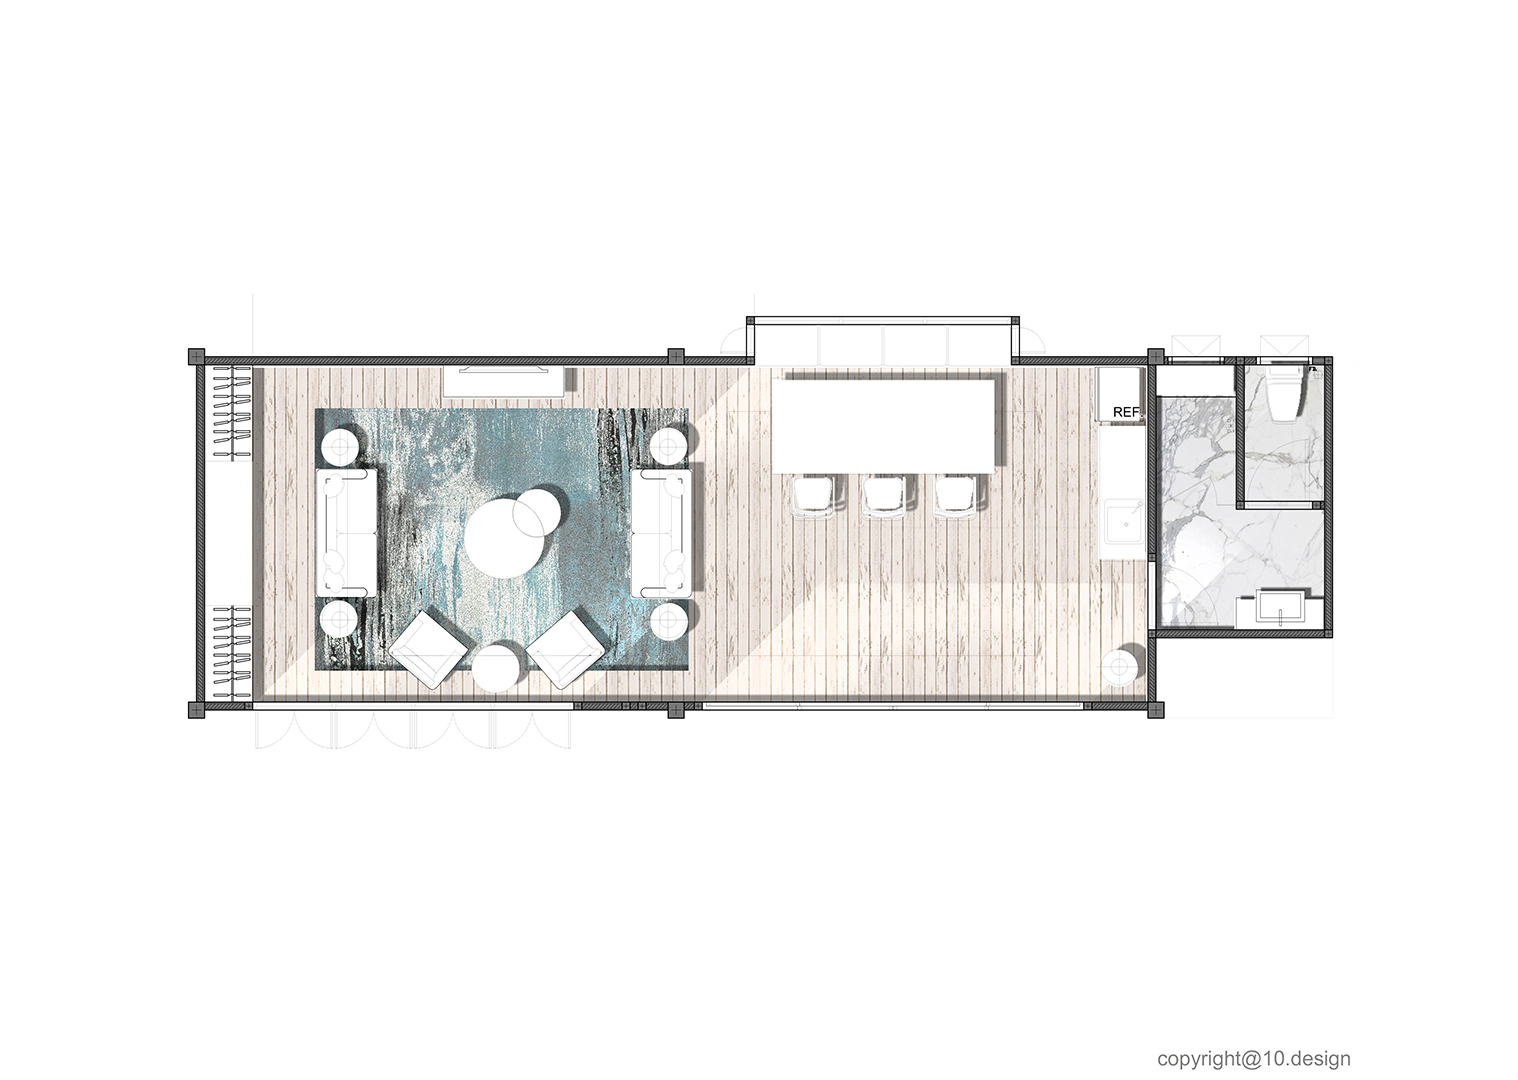 The clubhouse interior decoration 10design architecture vacation house 01